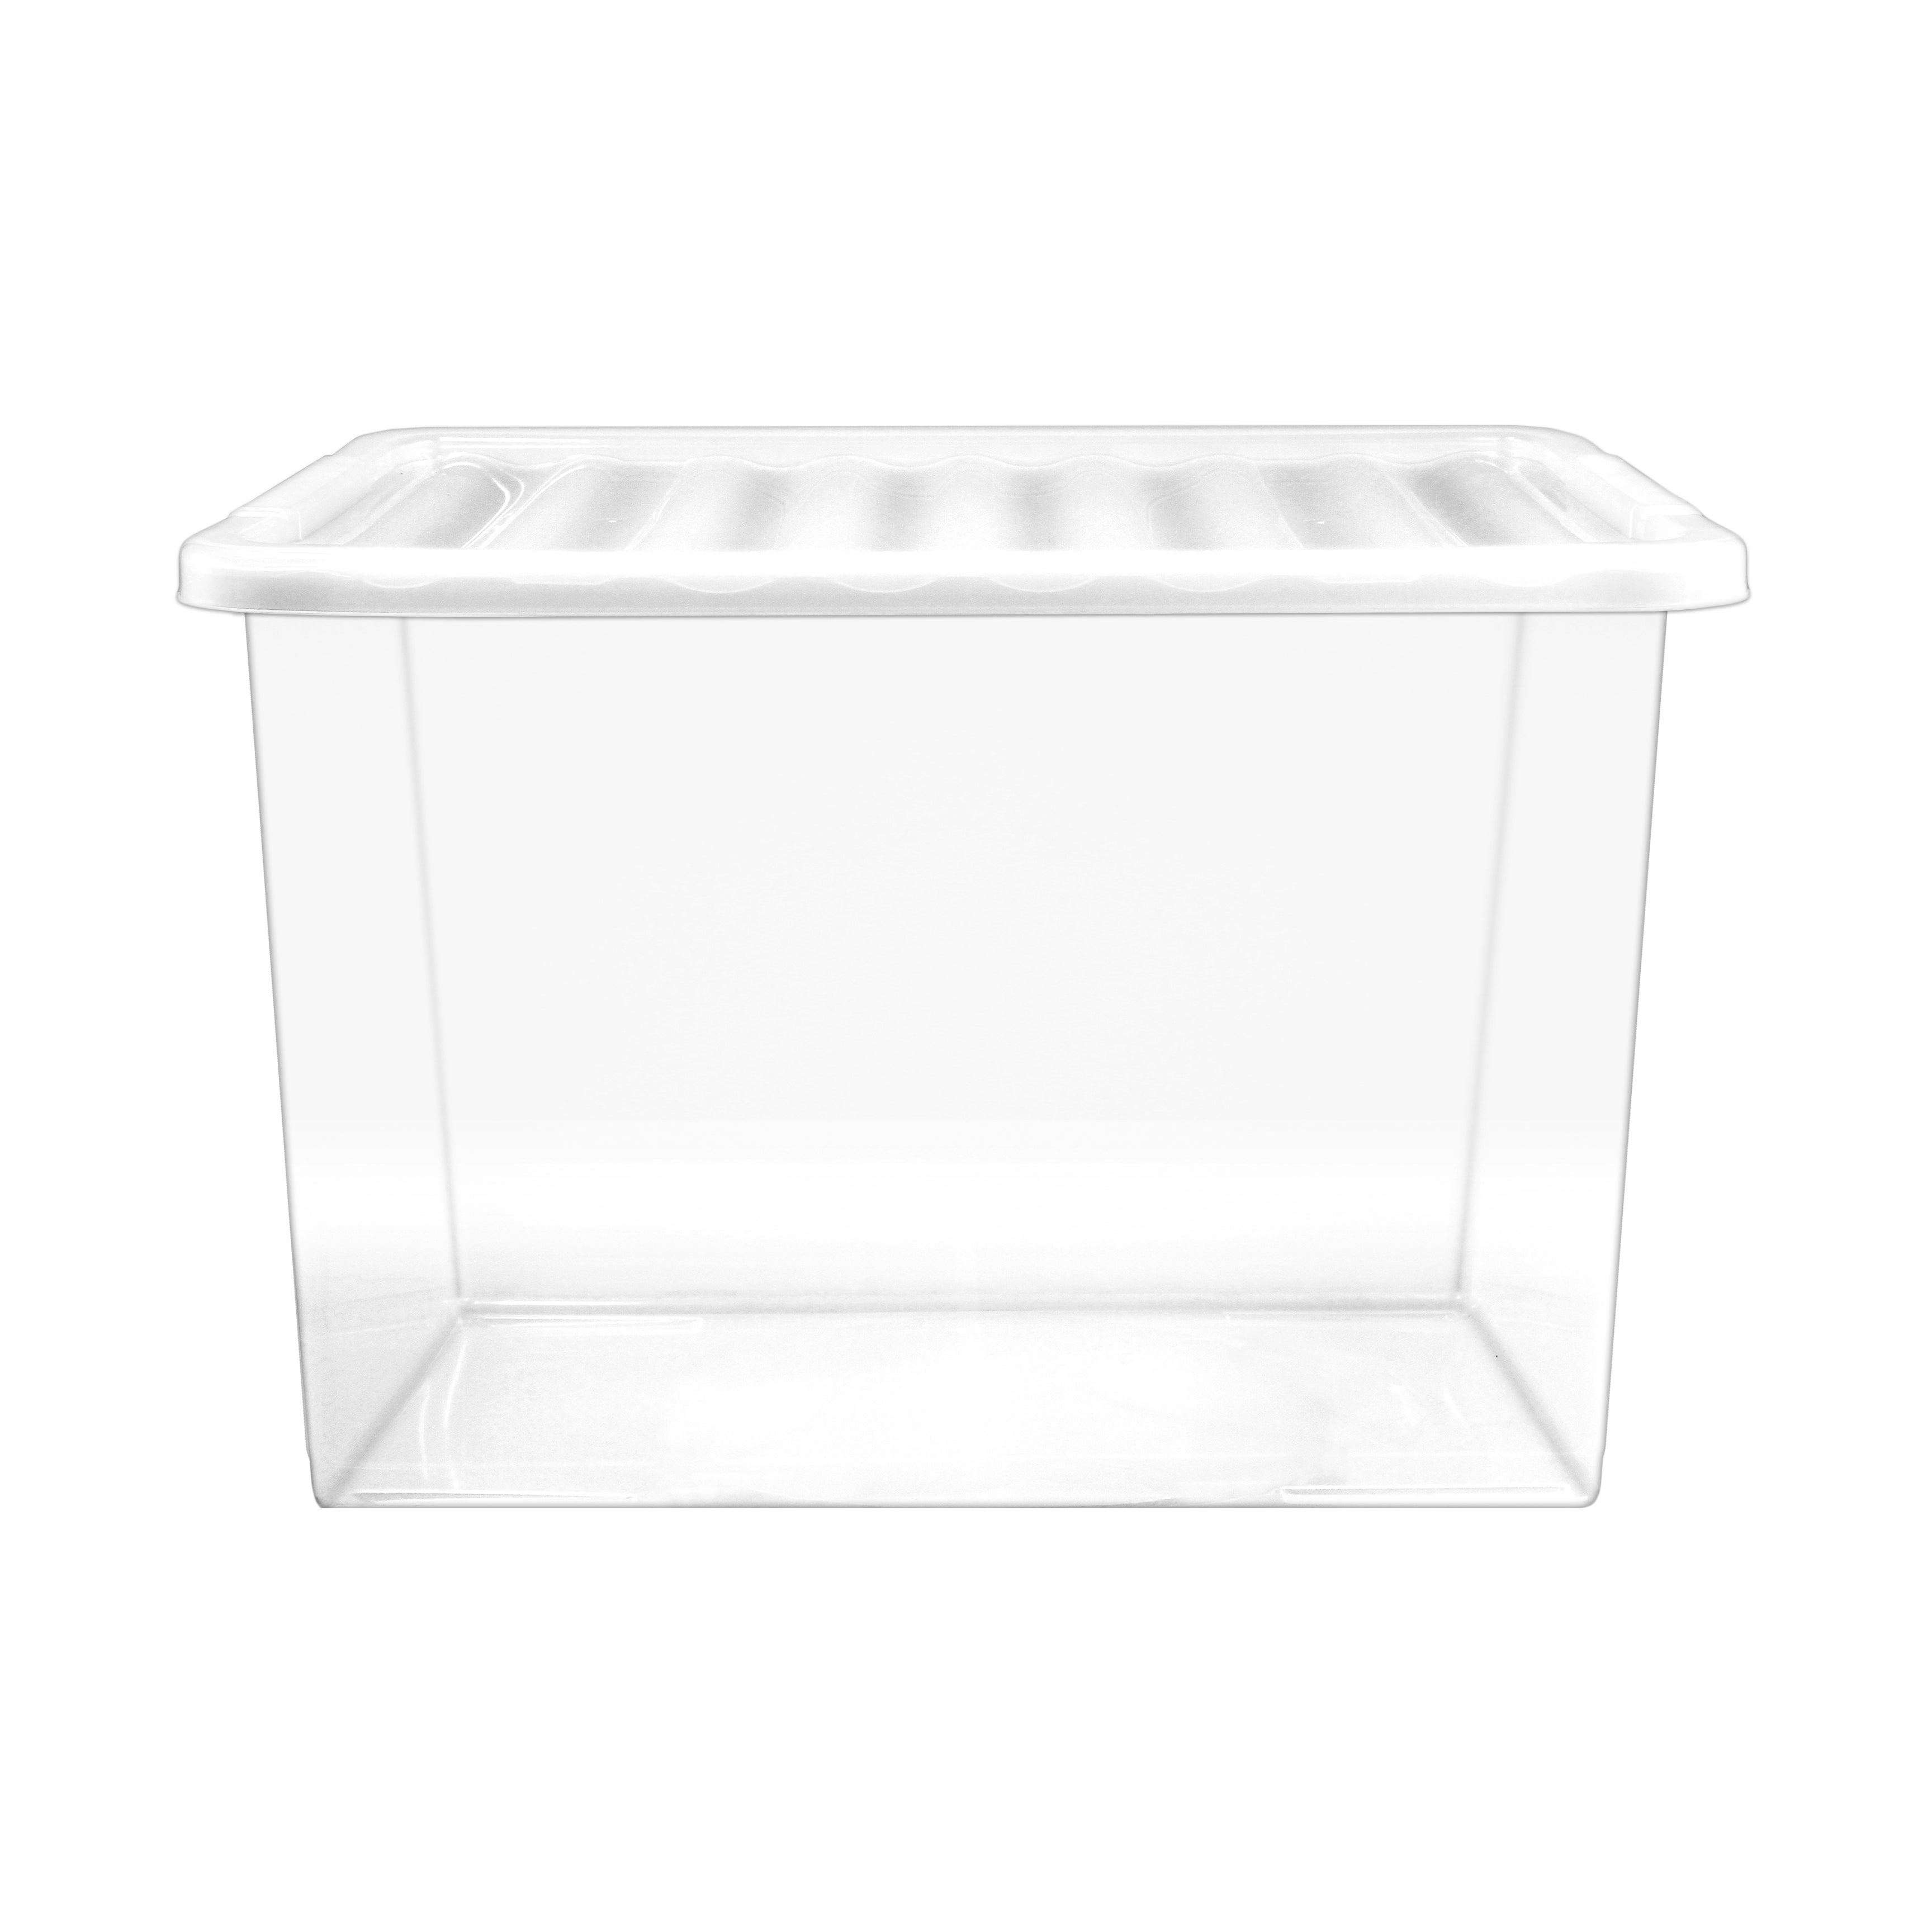 30L Plastic Storage Box with Lid